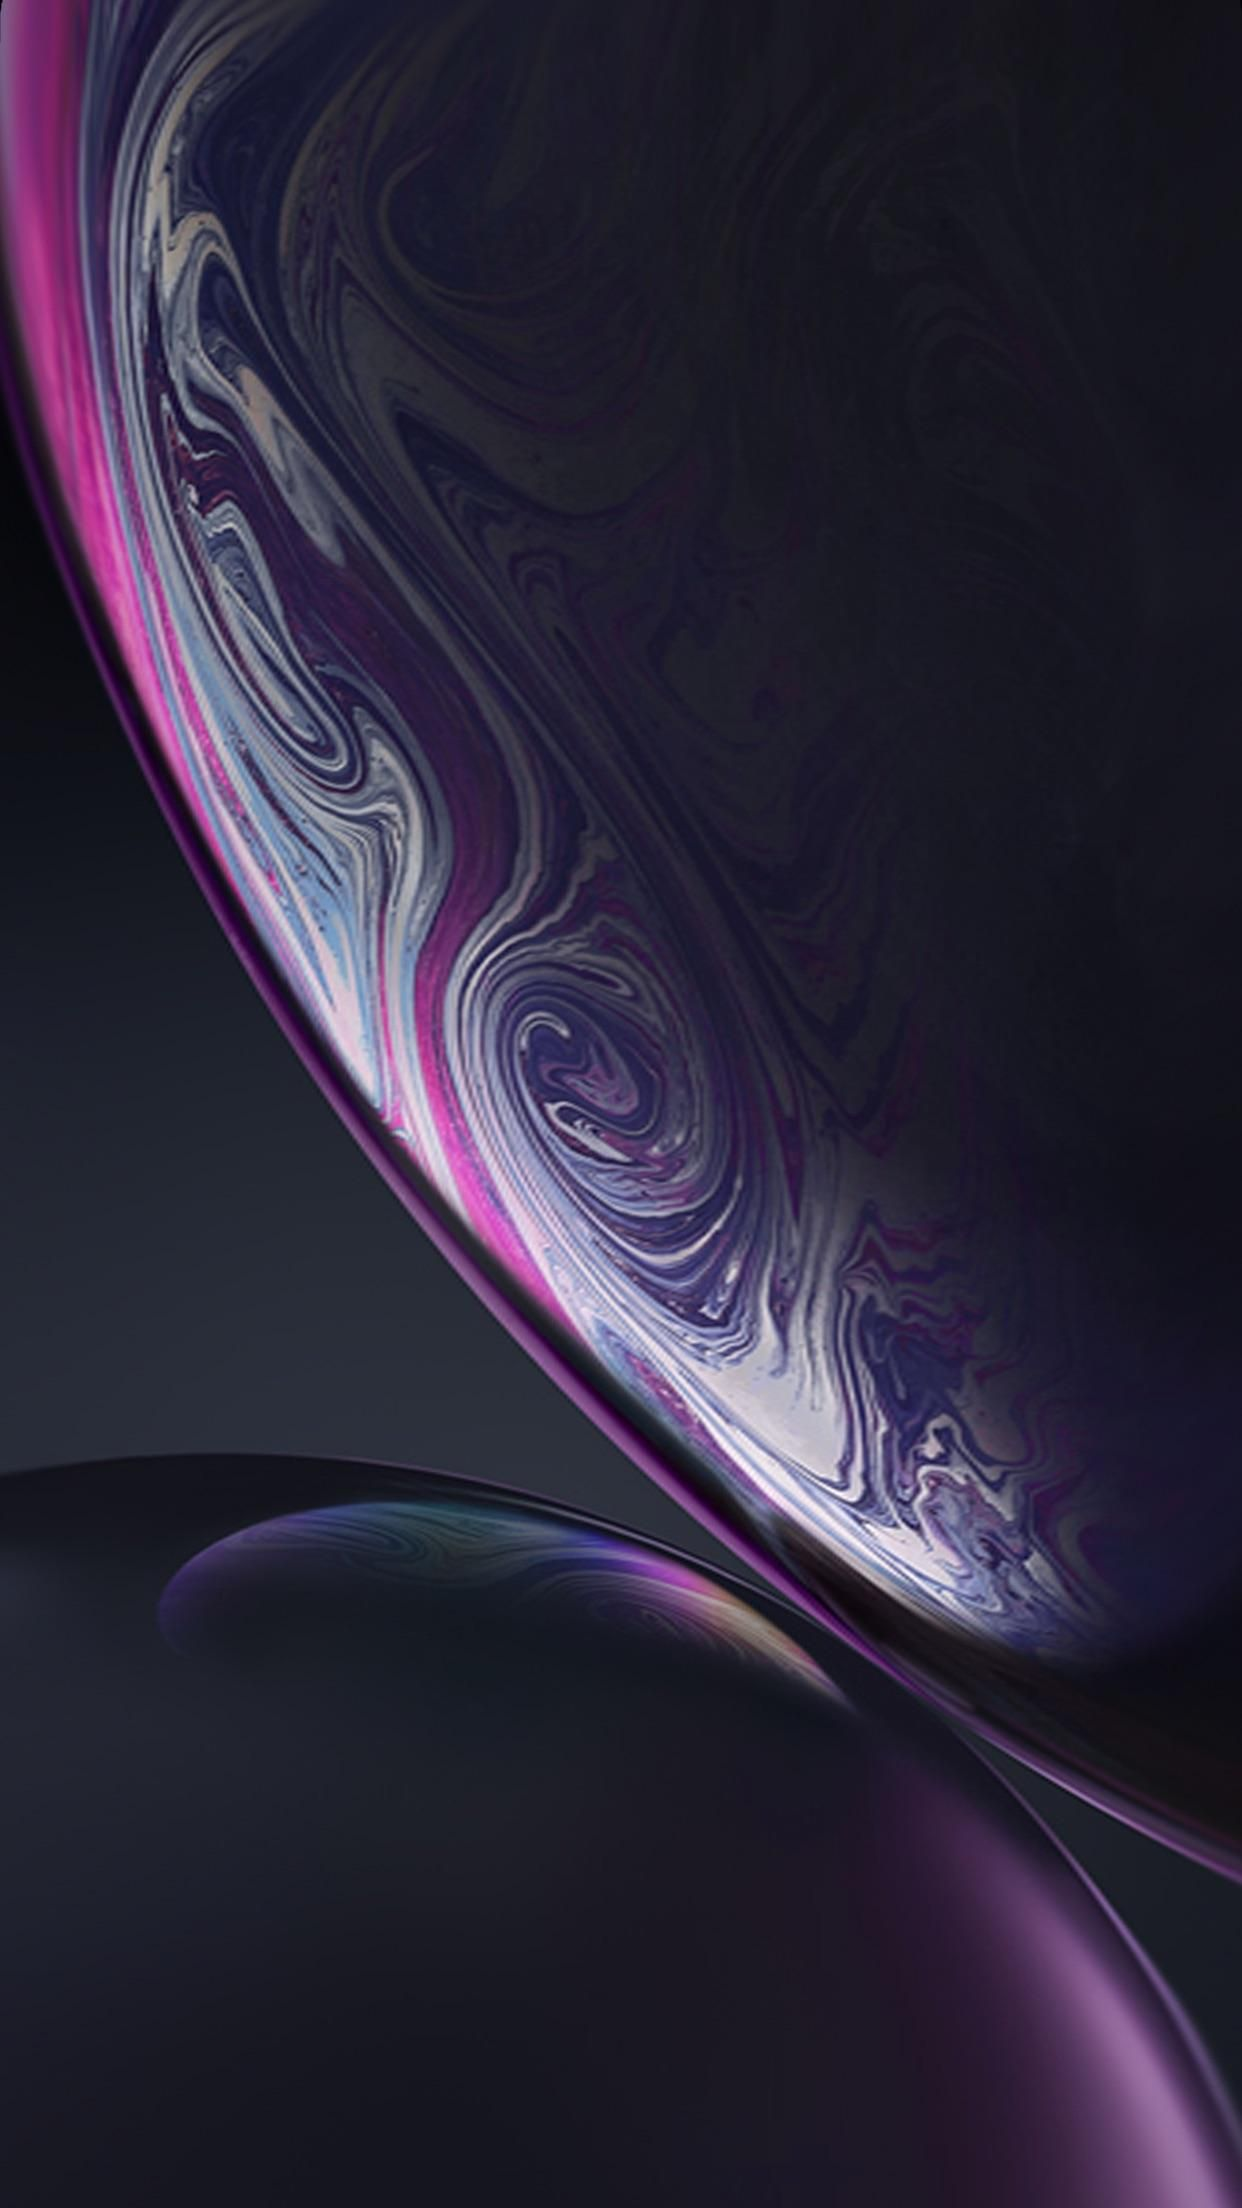 Iphone Xr Wallpaper Wallpapers For Cell Phones